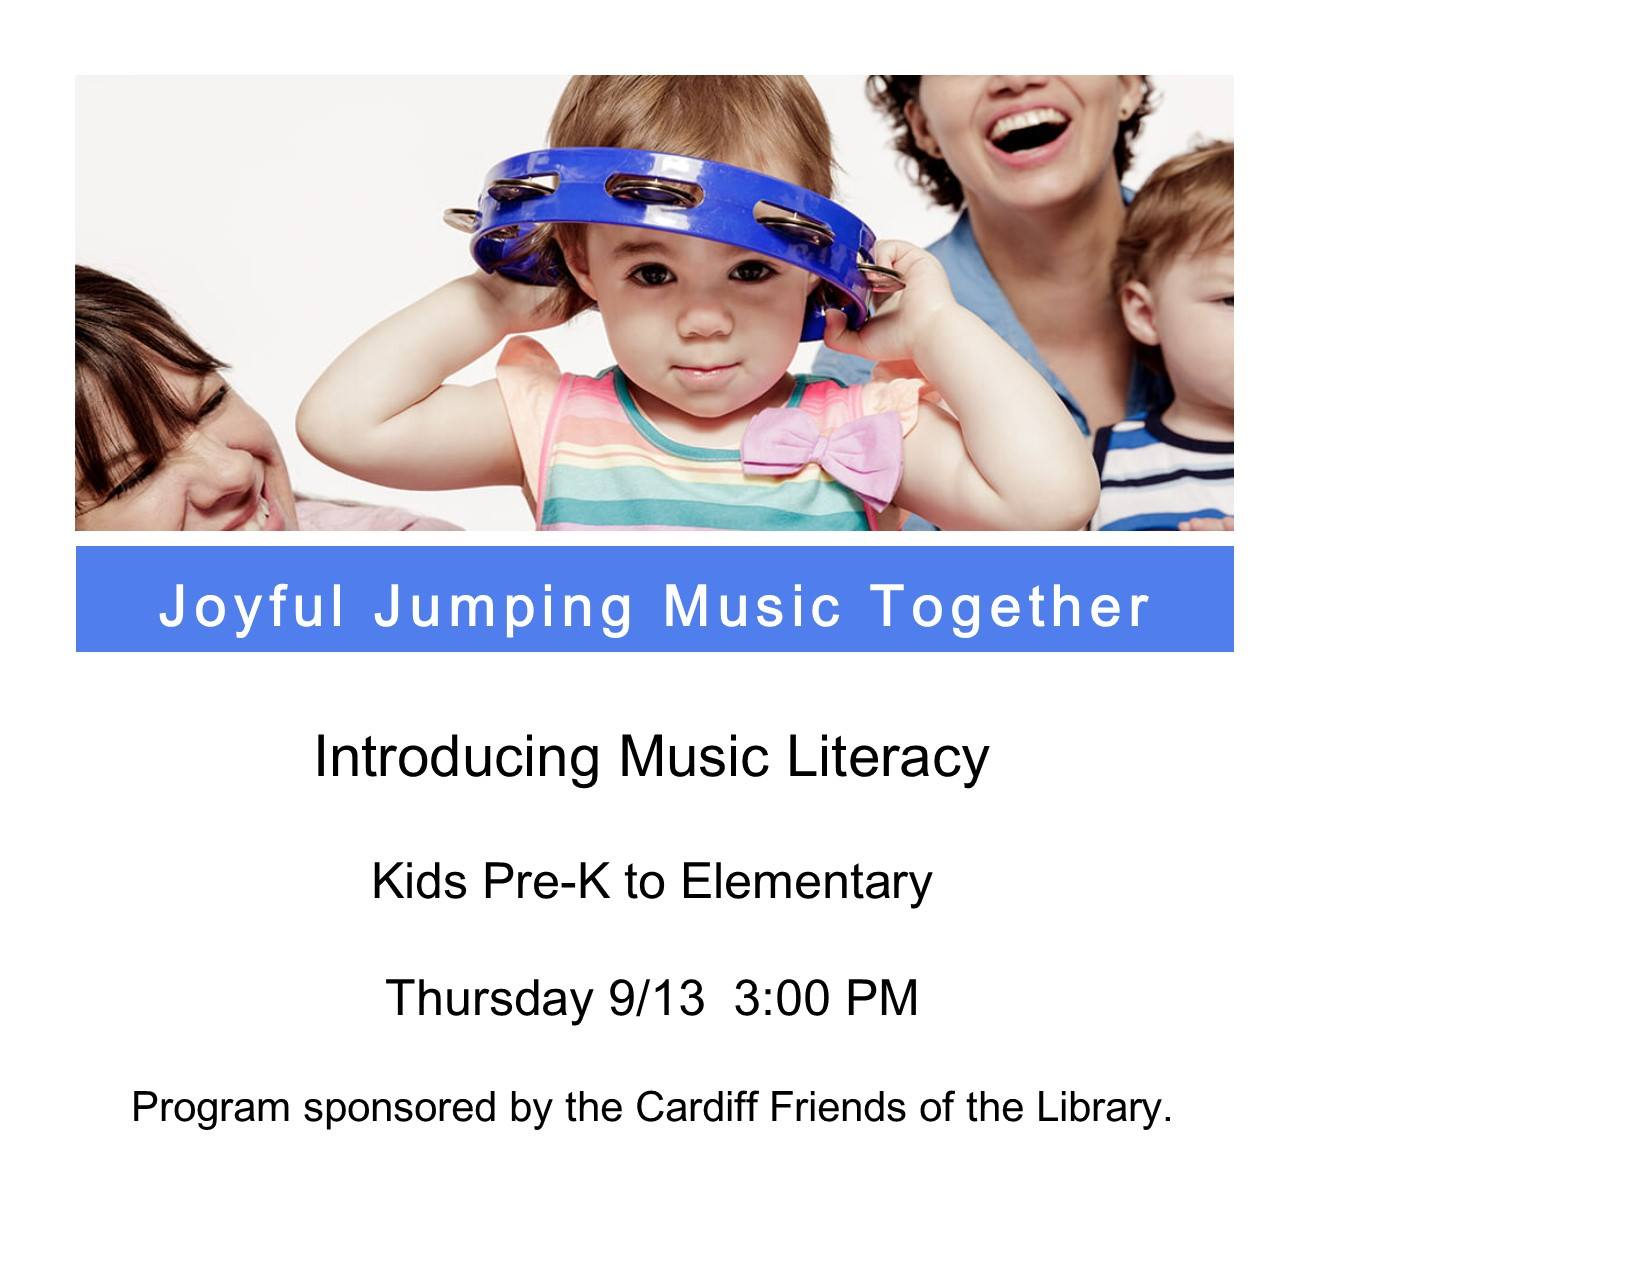 Joyful Jumping Music Together News San Diego County News Center